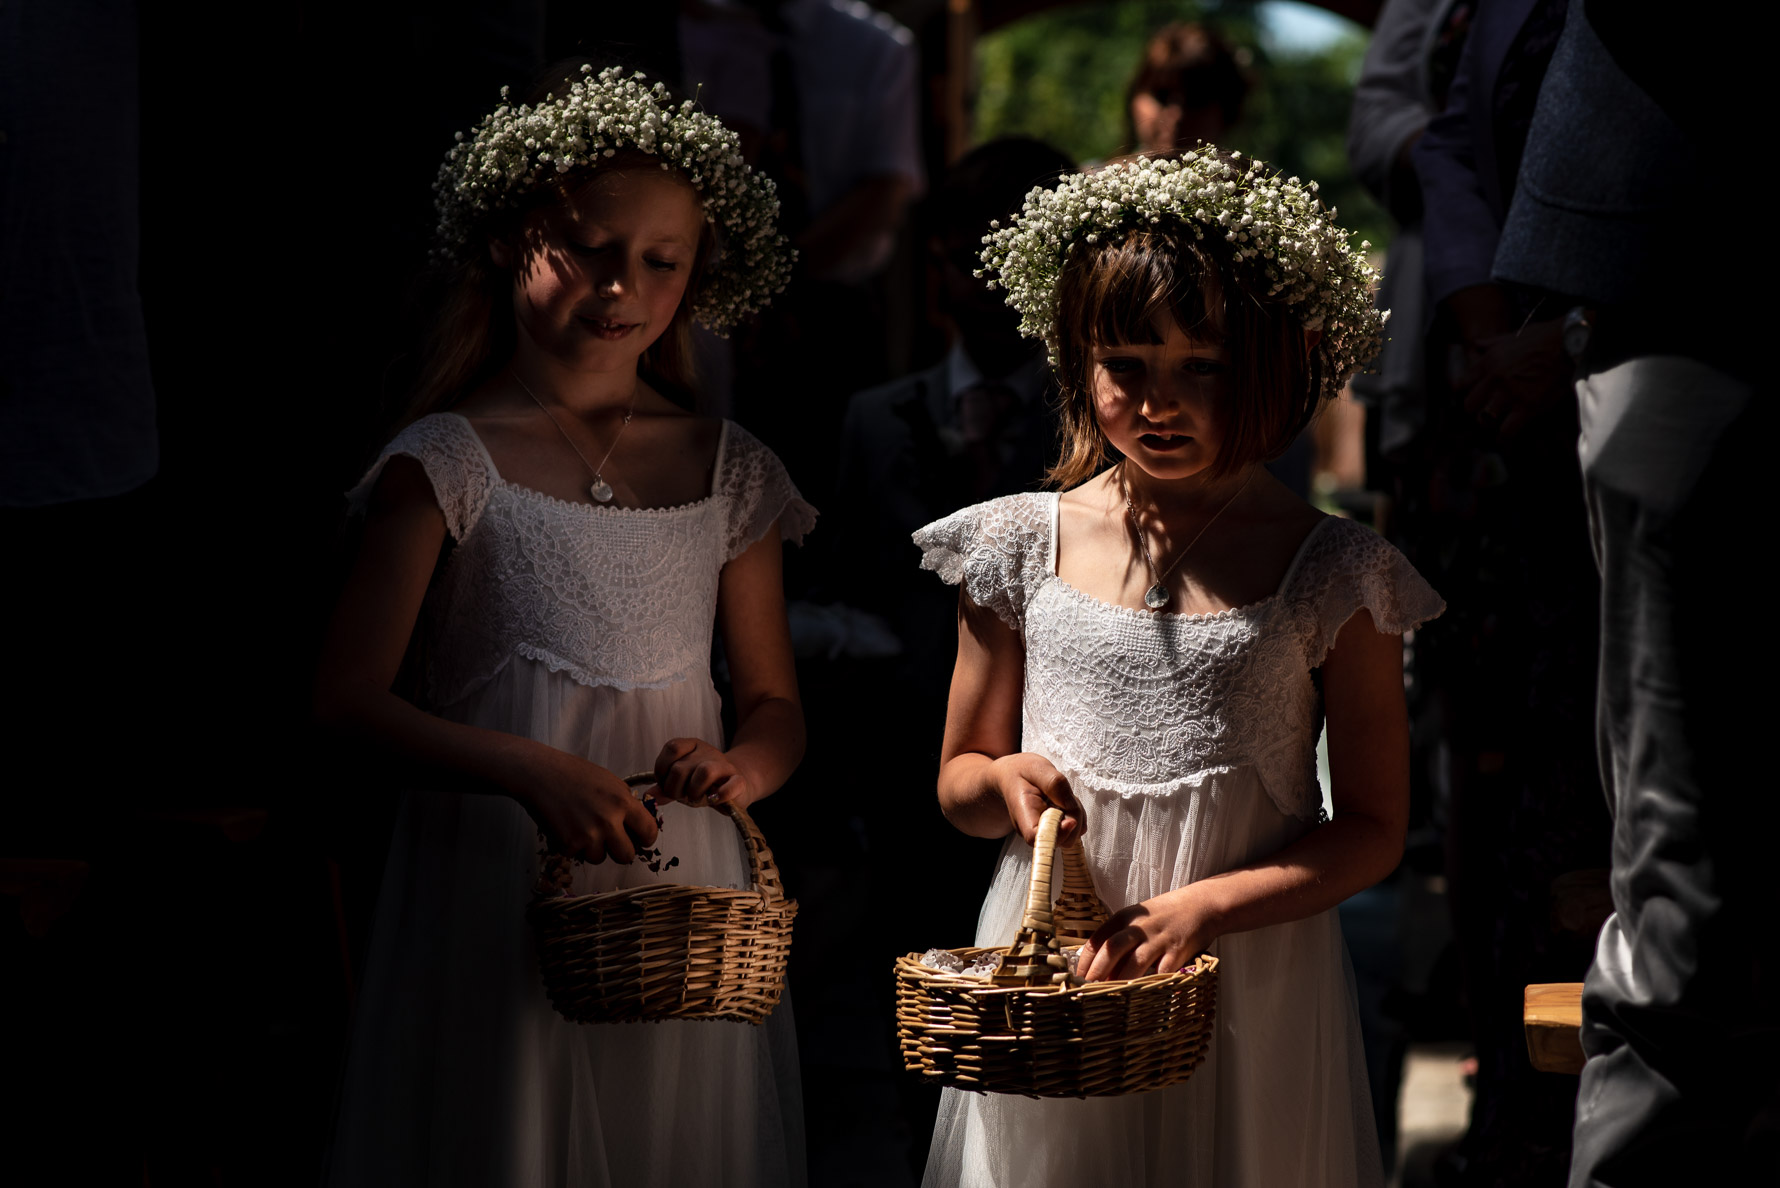 Flower girls in dramatic light